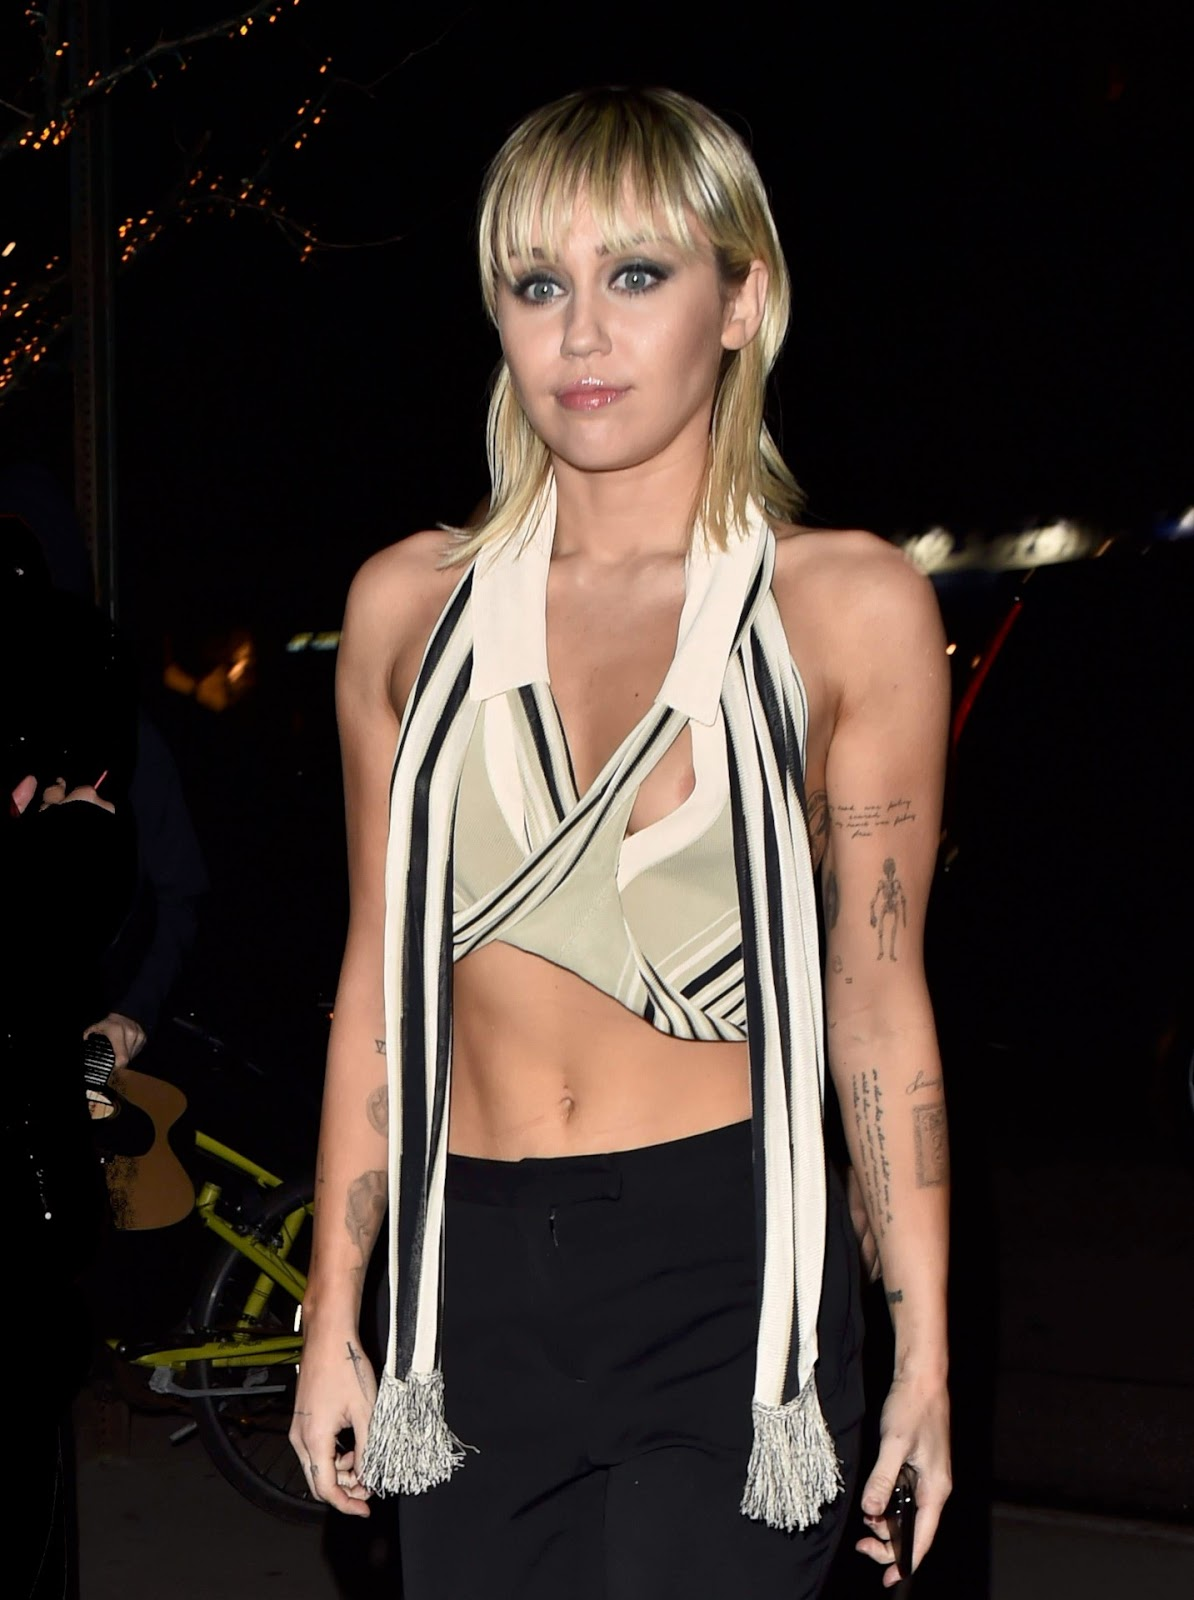 Miley Cyrus suffers WARDROBE MALFUNCTION in busty wrap crop top as she leaves Marc Jacobs NYFW show after electrifying runway appearance